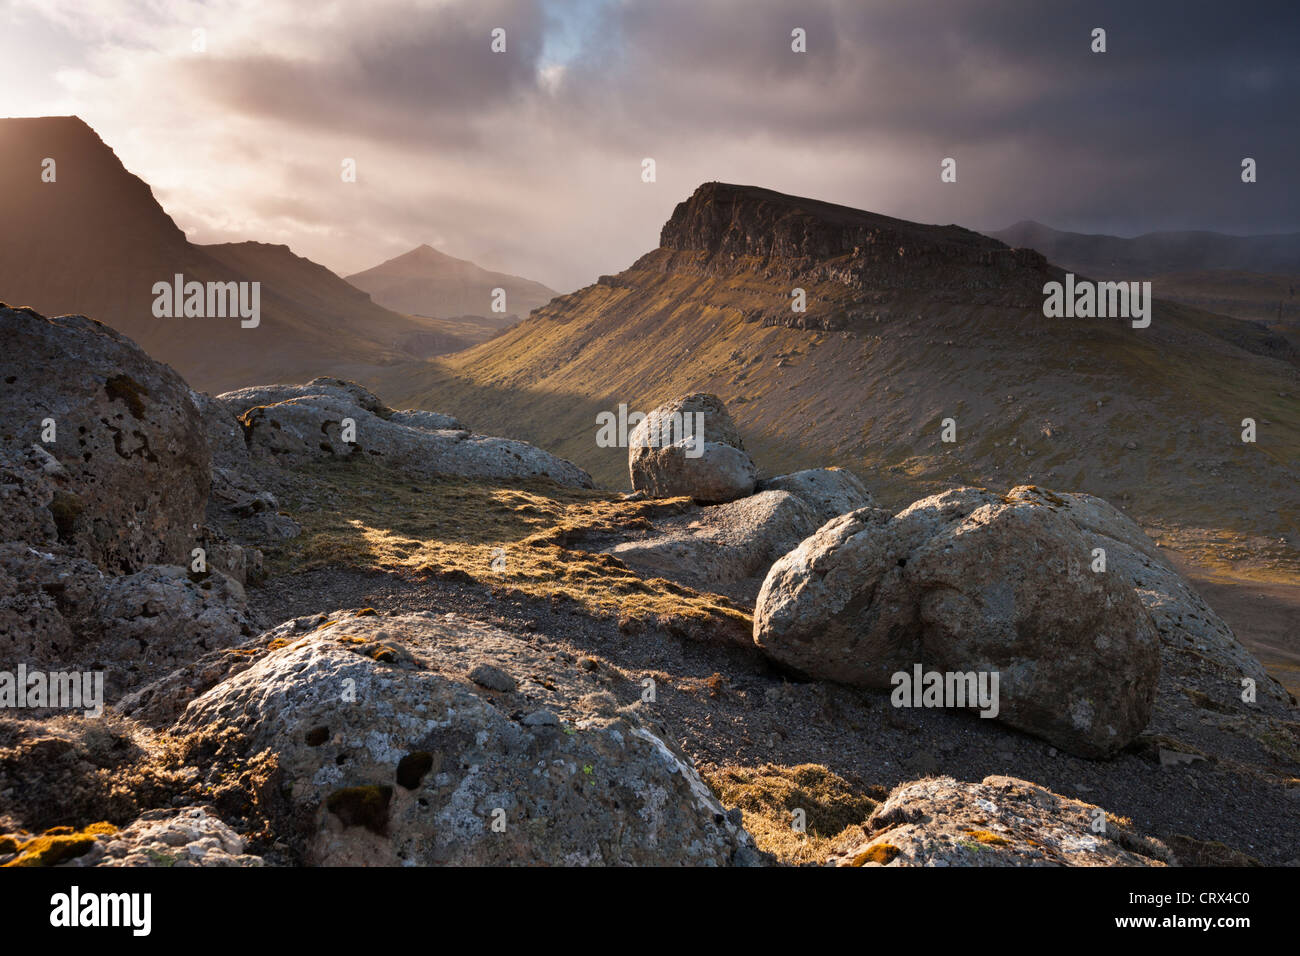 Mountainous interior of the island of Streymoy, one of the Faroe Islands. Spring (June) 2012. Stock Foto